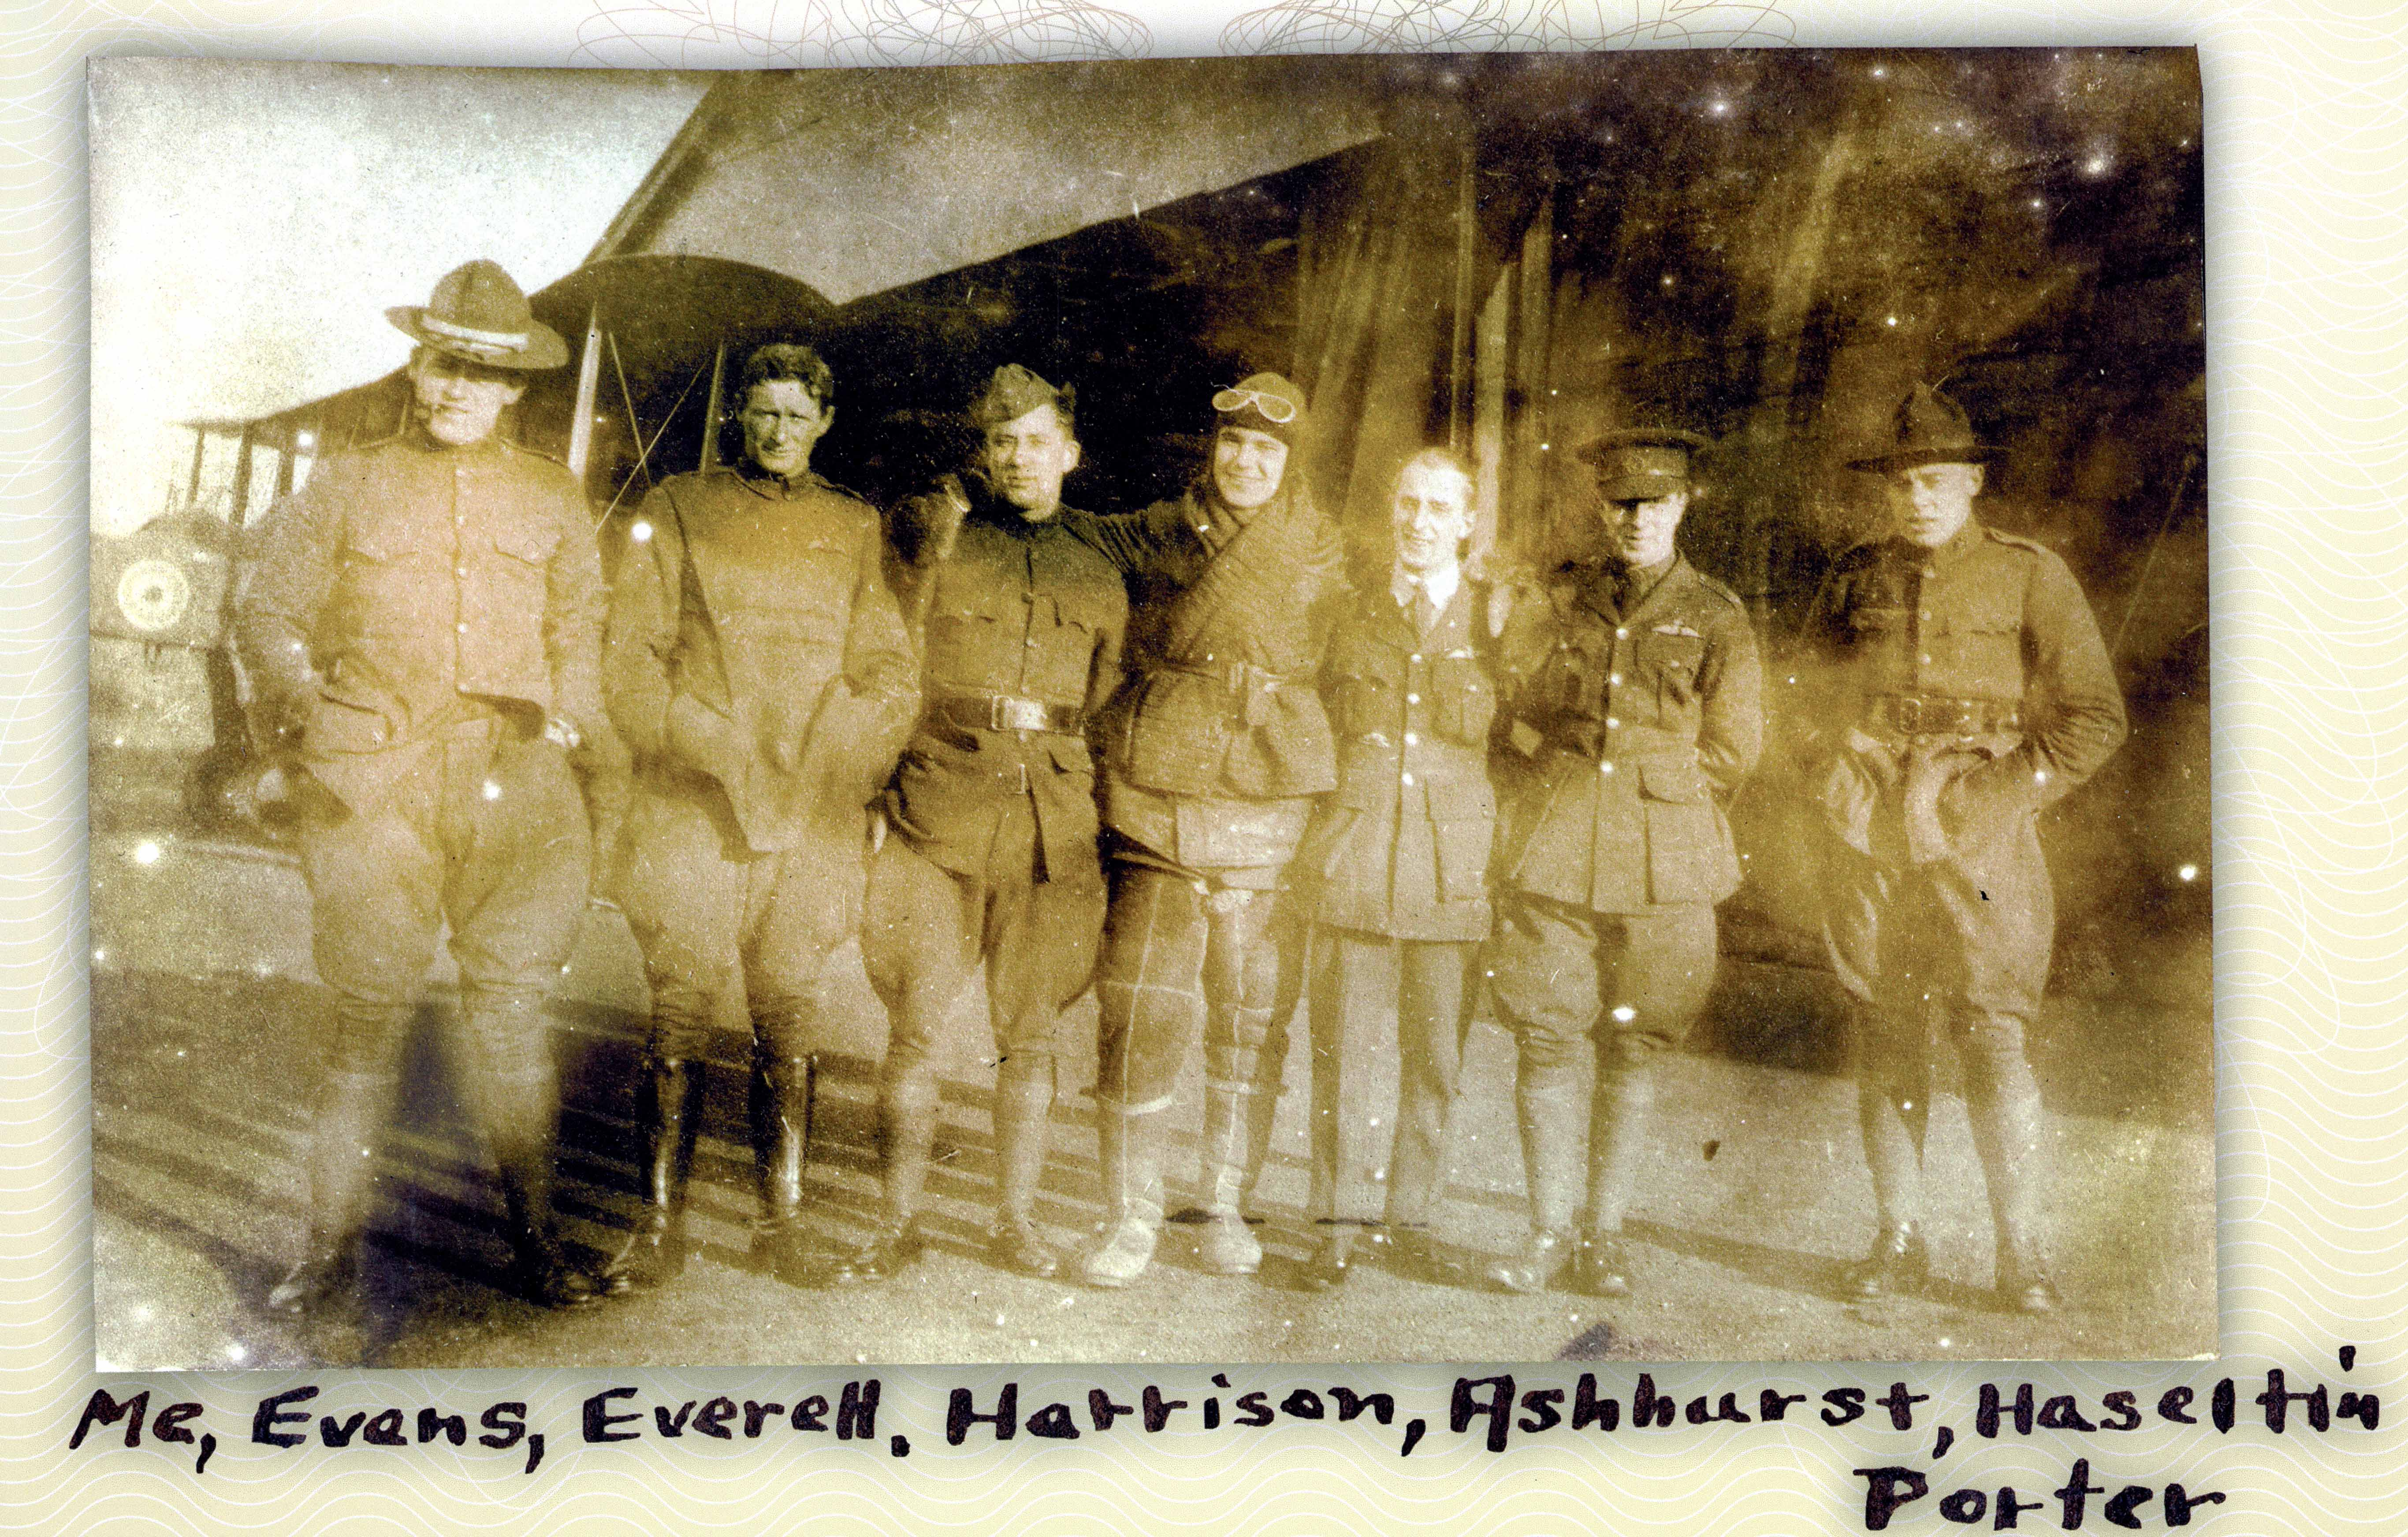 A photo of seven men, two of whom, by the wings on their chests, are officers and pilots; identifications are written in ink below the photo.